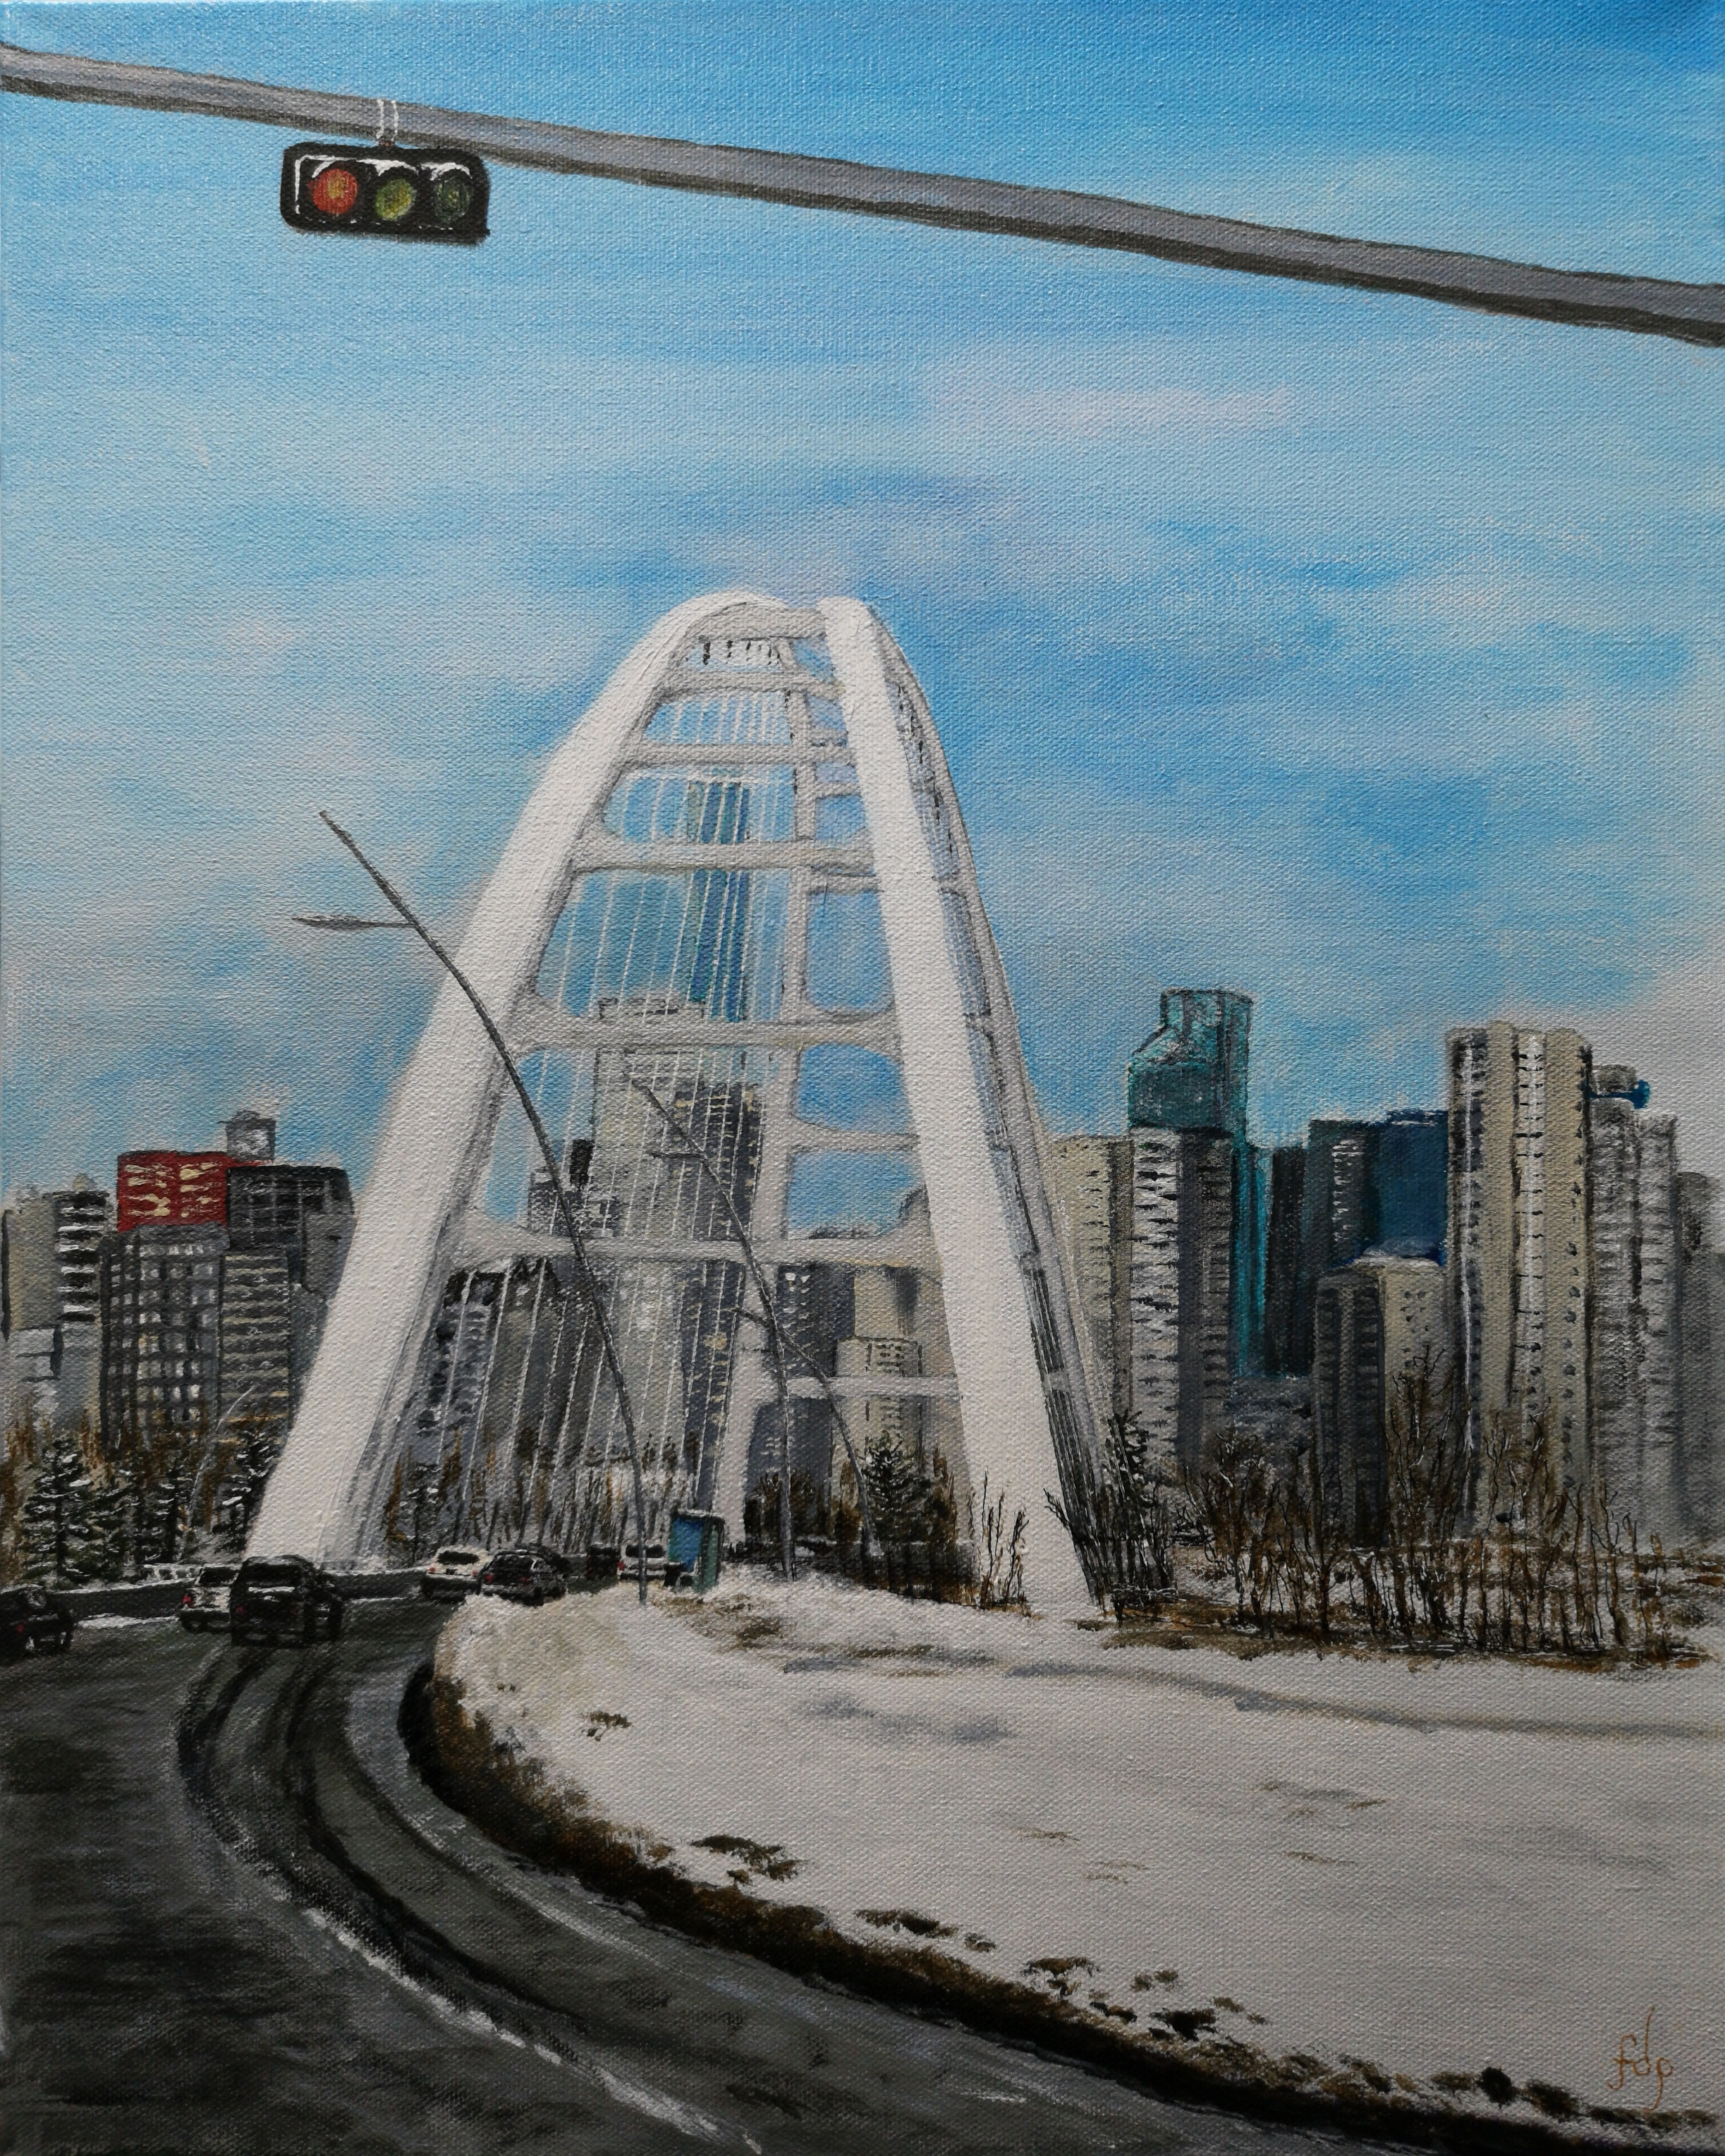 Waiting at the Walterdale Bridge